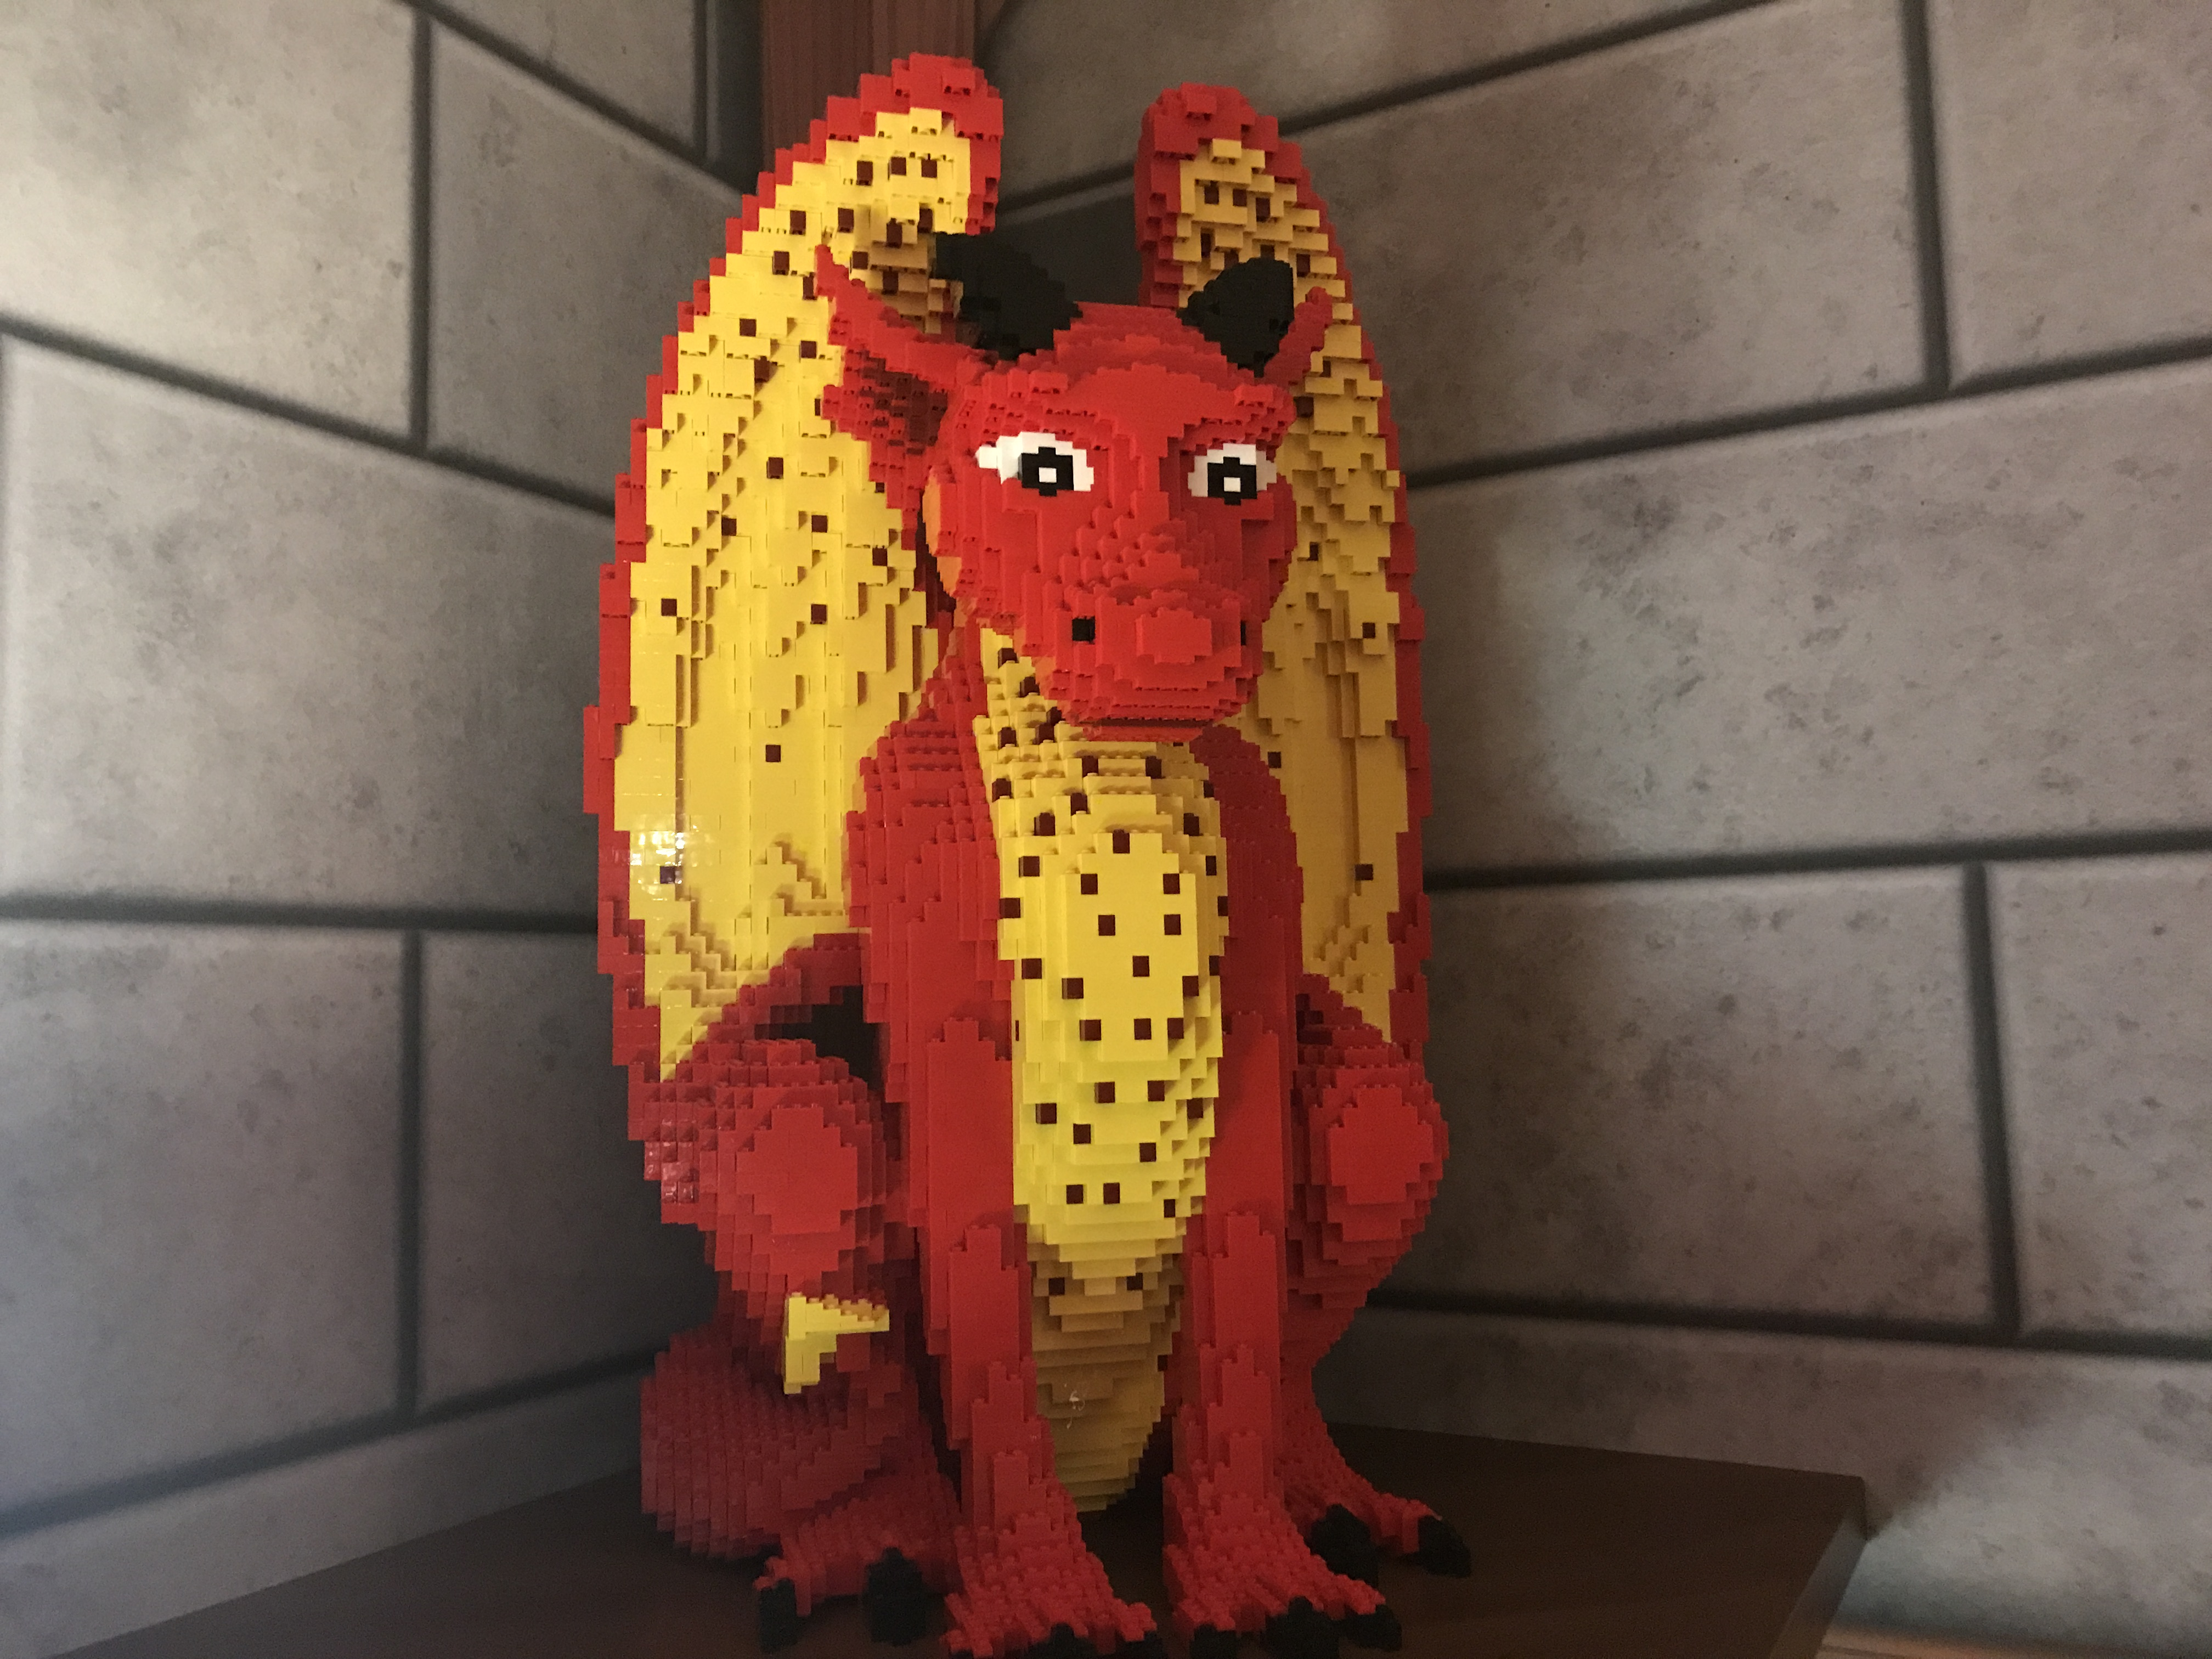 A red Lego dragon in the Knight's room at the Legoland Castle Hotel (Kate Whiting/PA)